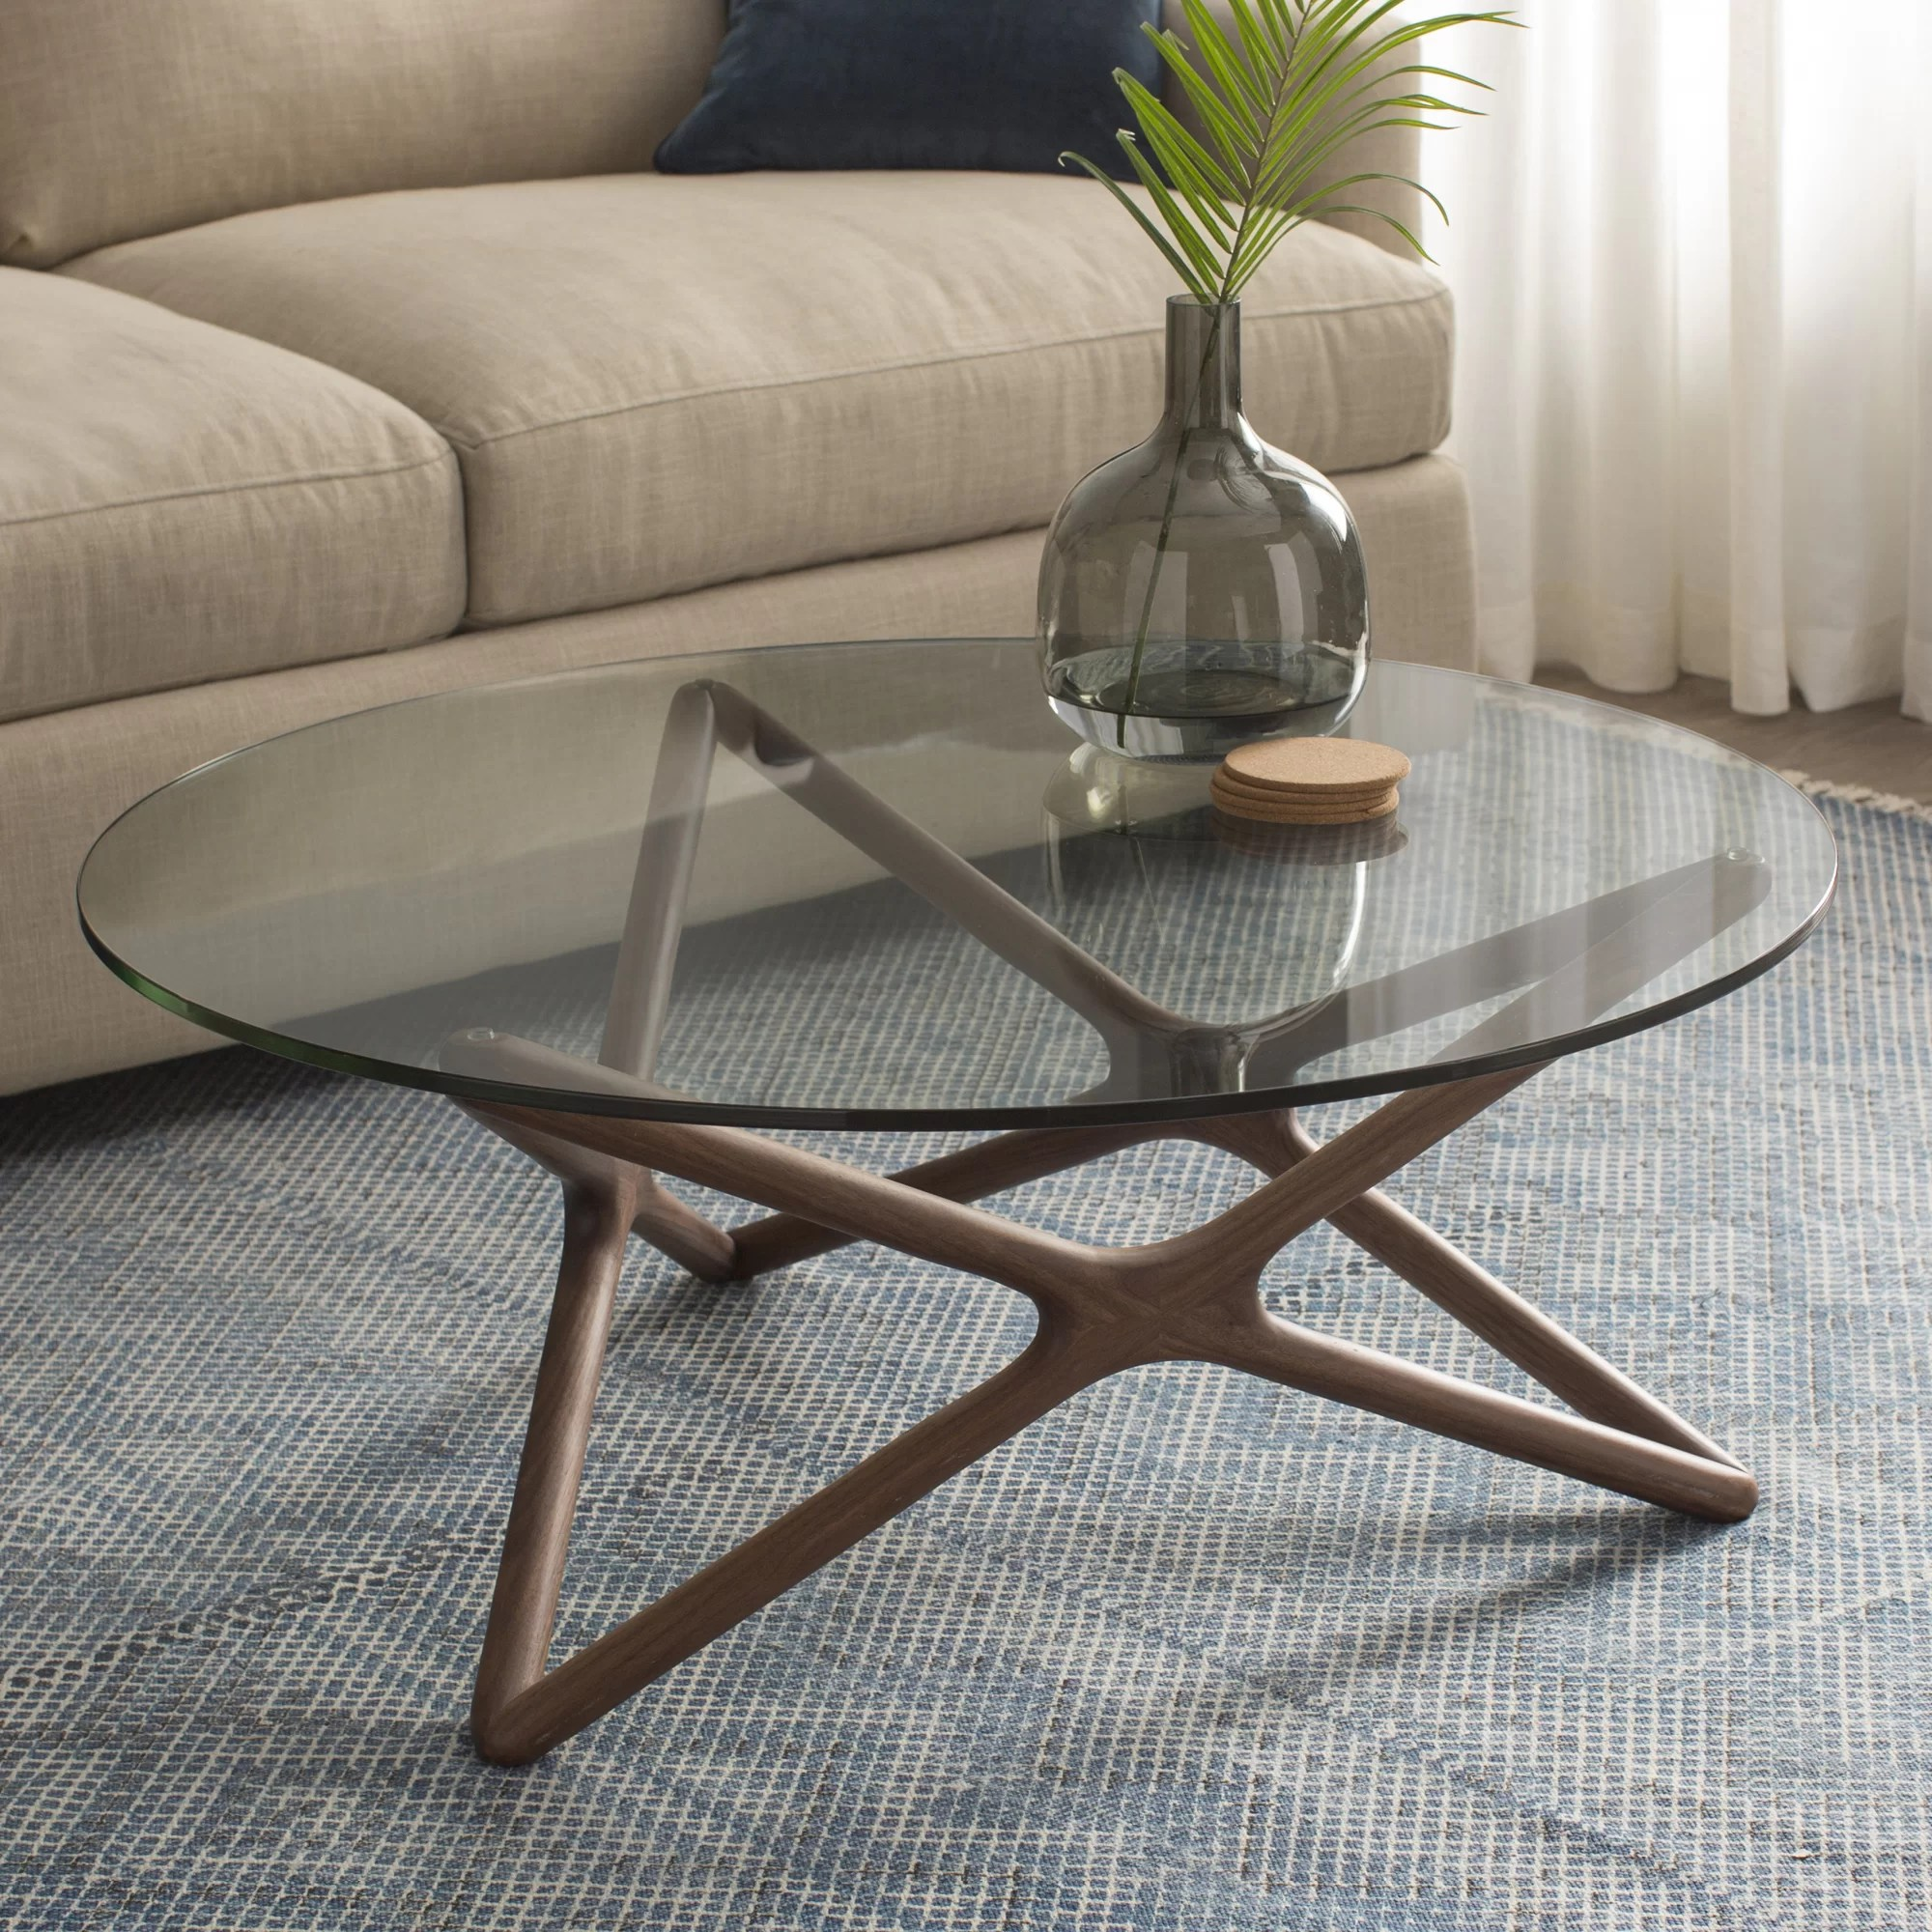 pictures of coffee tables in living rooms sleek room furniture allmodern